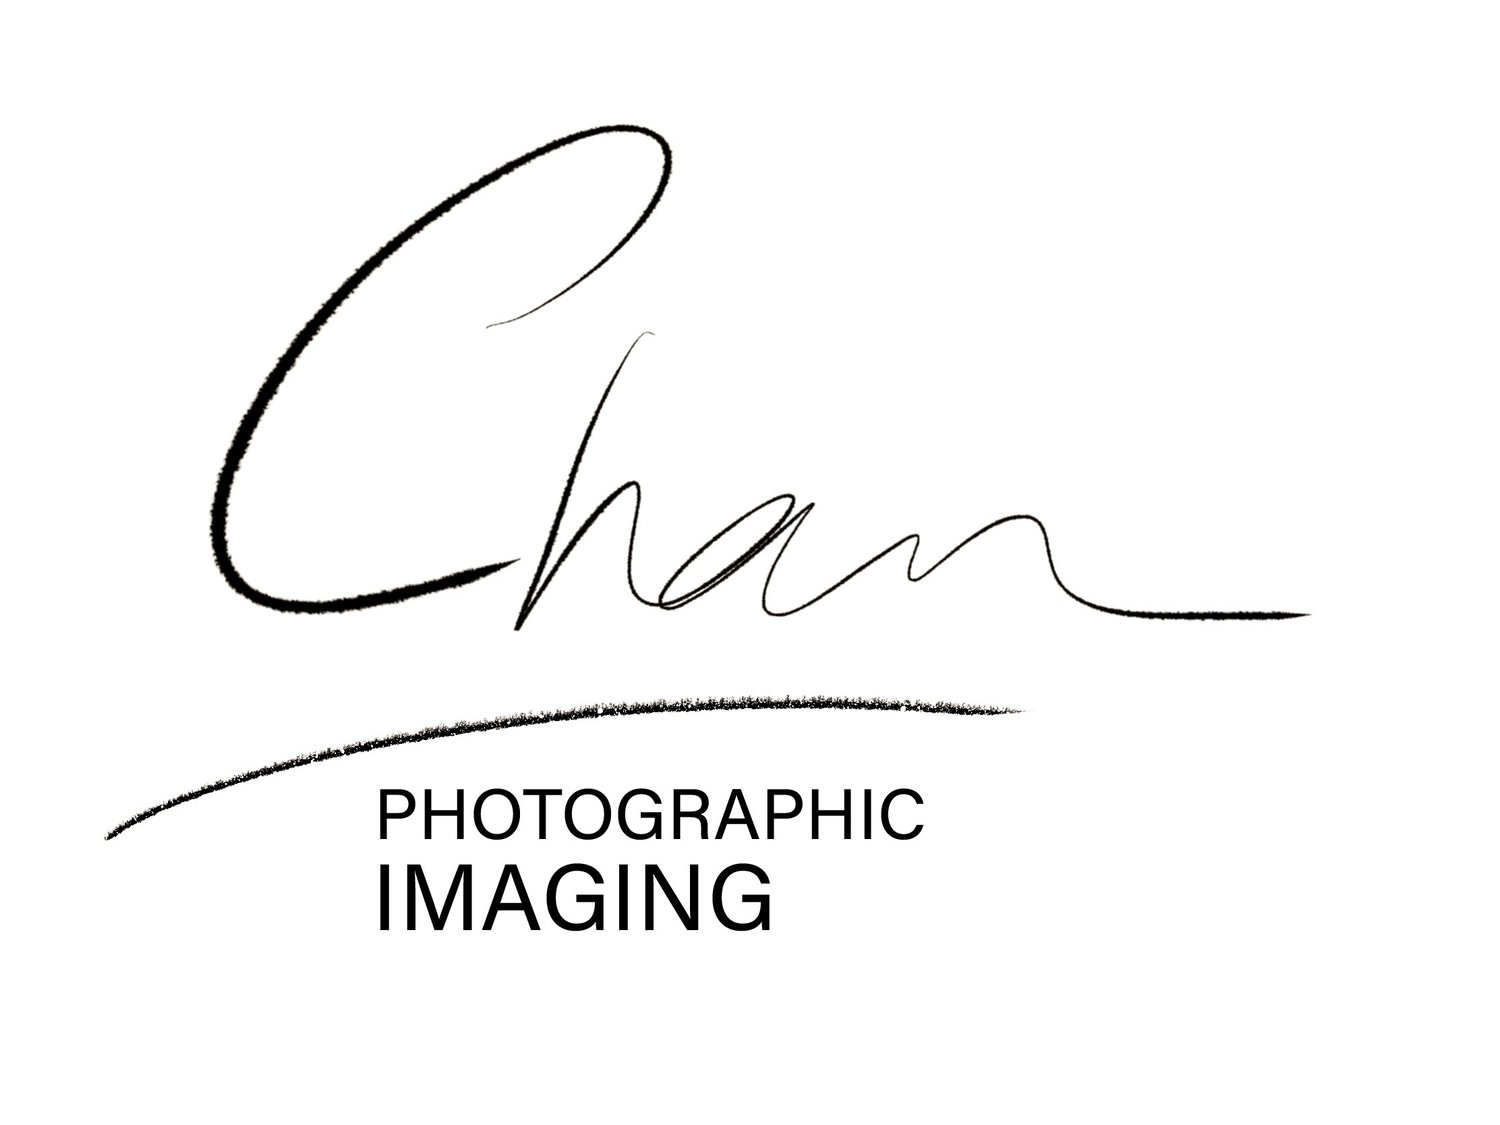 Chan Photographic Imaging